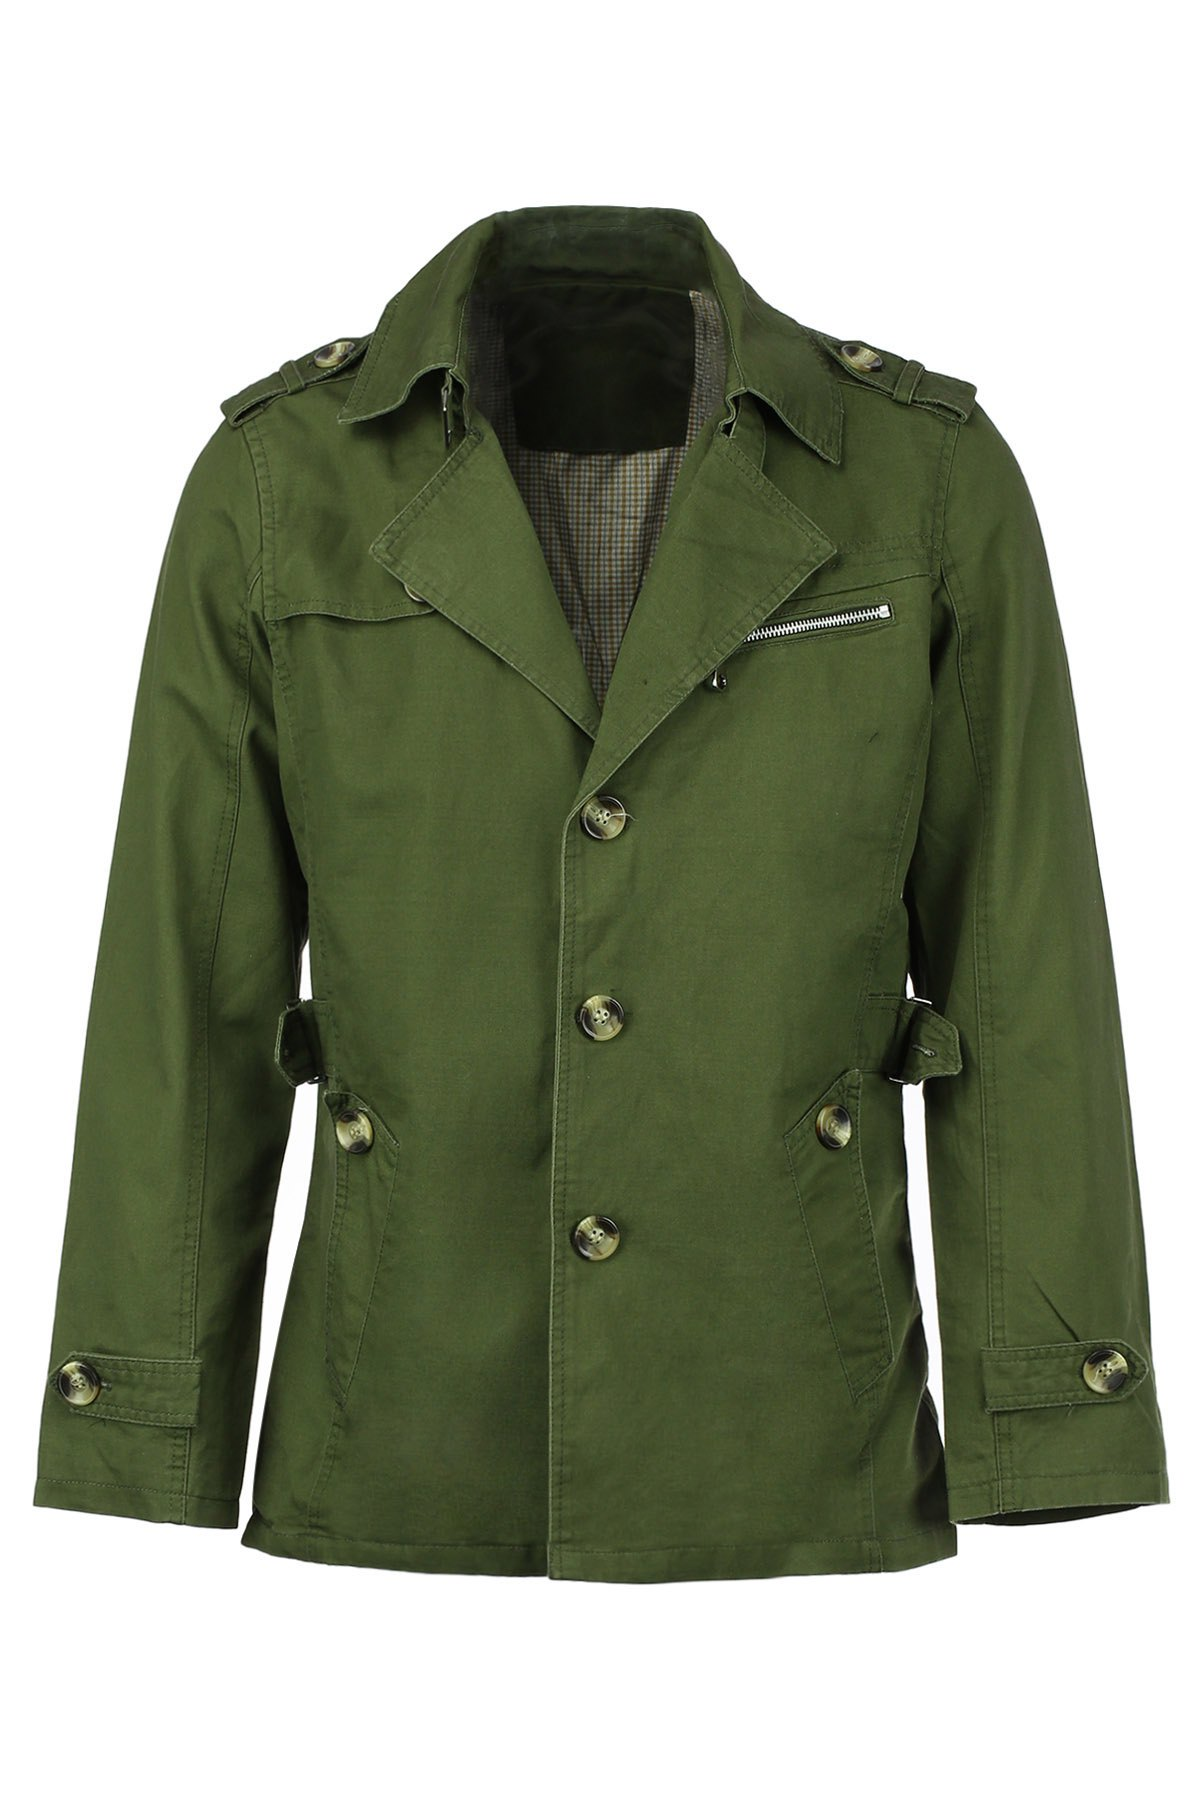 Epaulet Turn-Down Collar Single Breasted Long Sleeve Men's Trench Coat - ARMY GREEN L